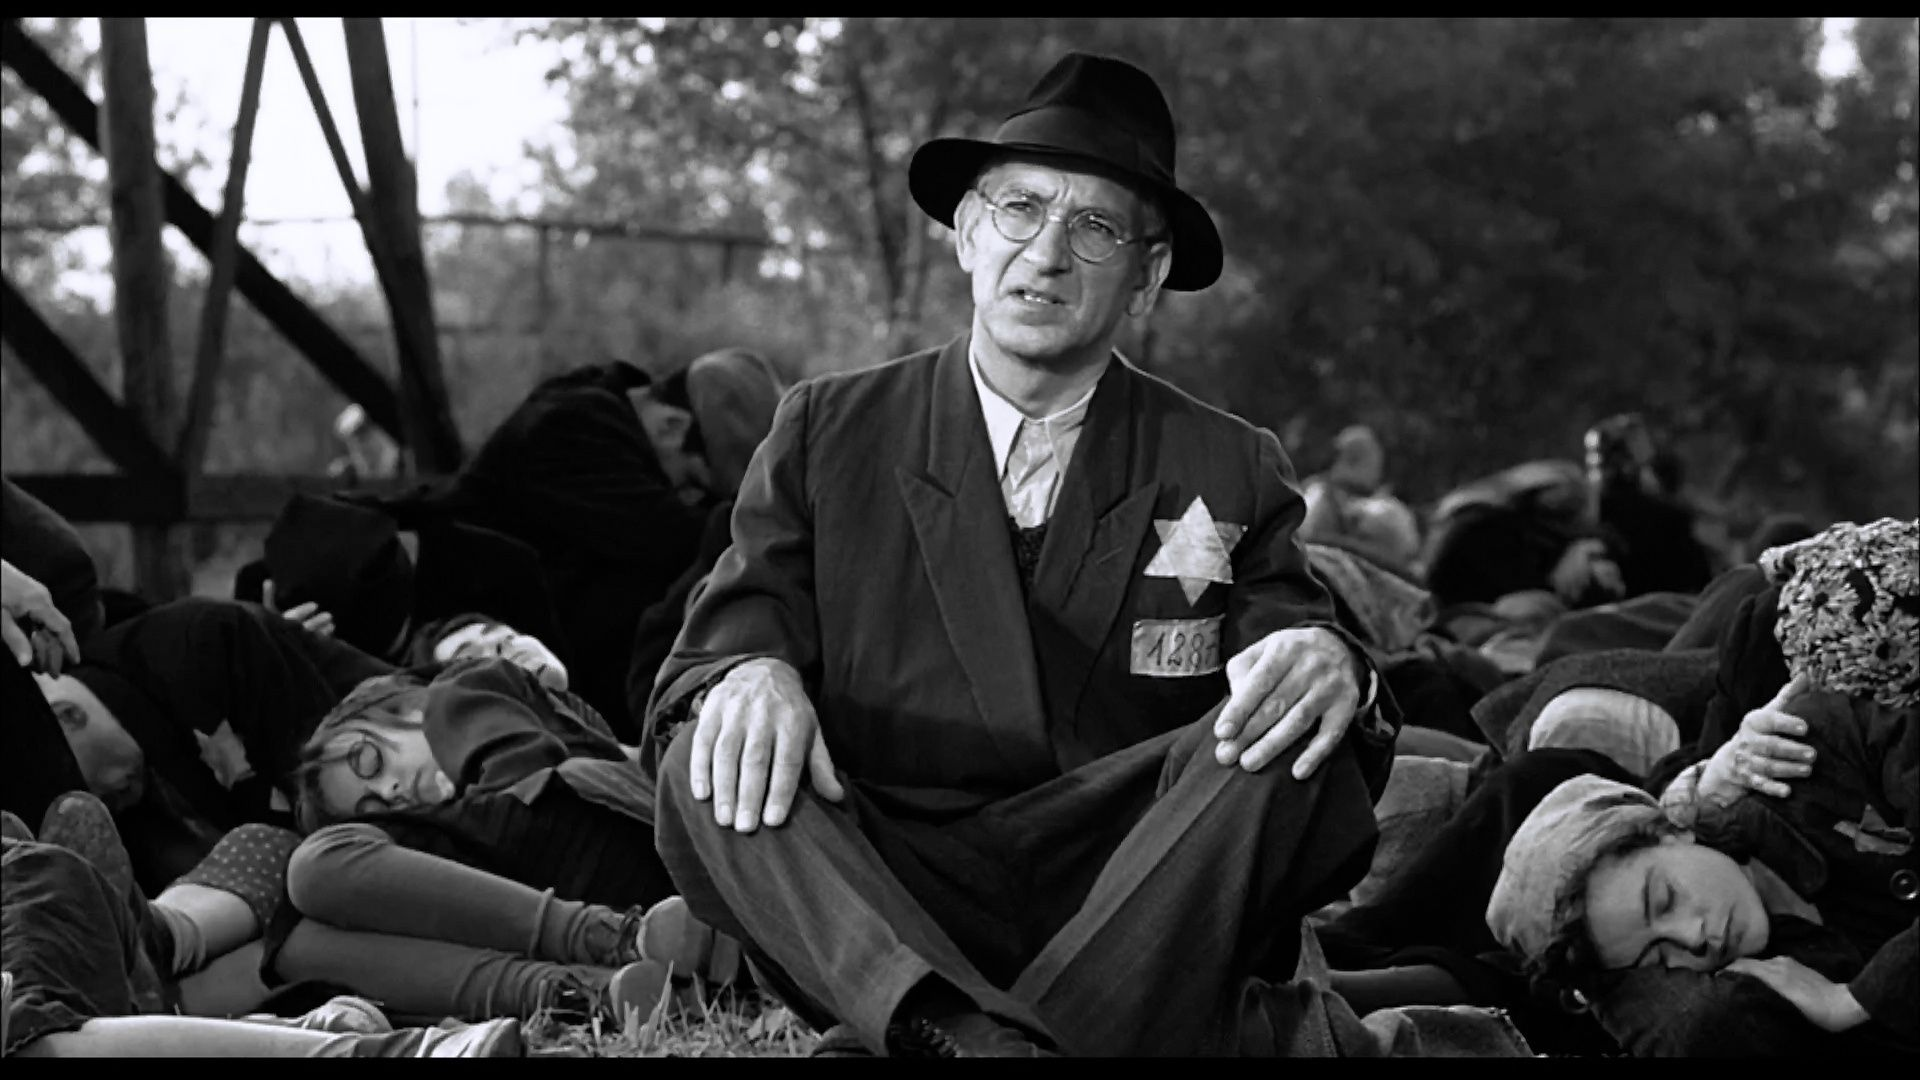 Oskar in schindler's list movie